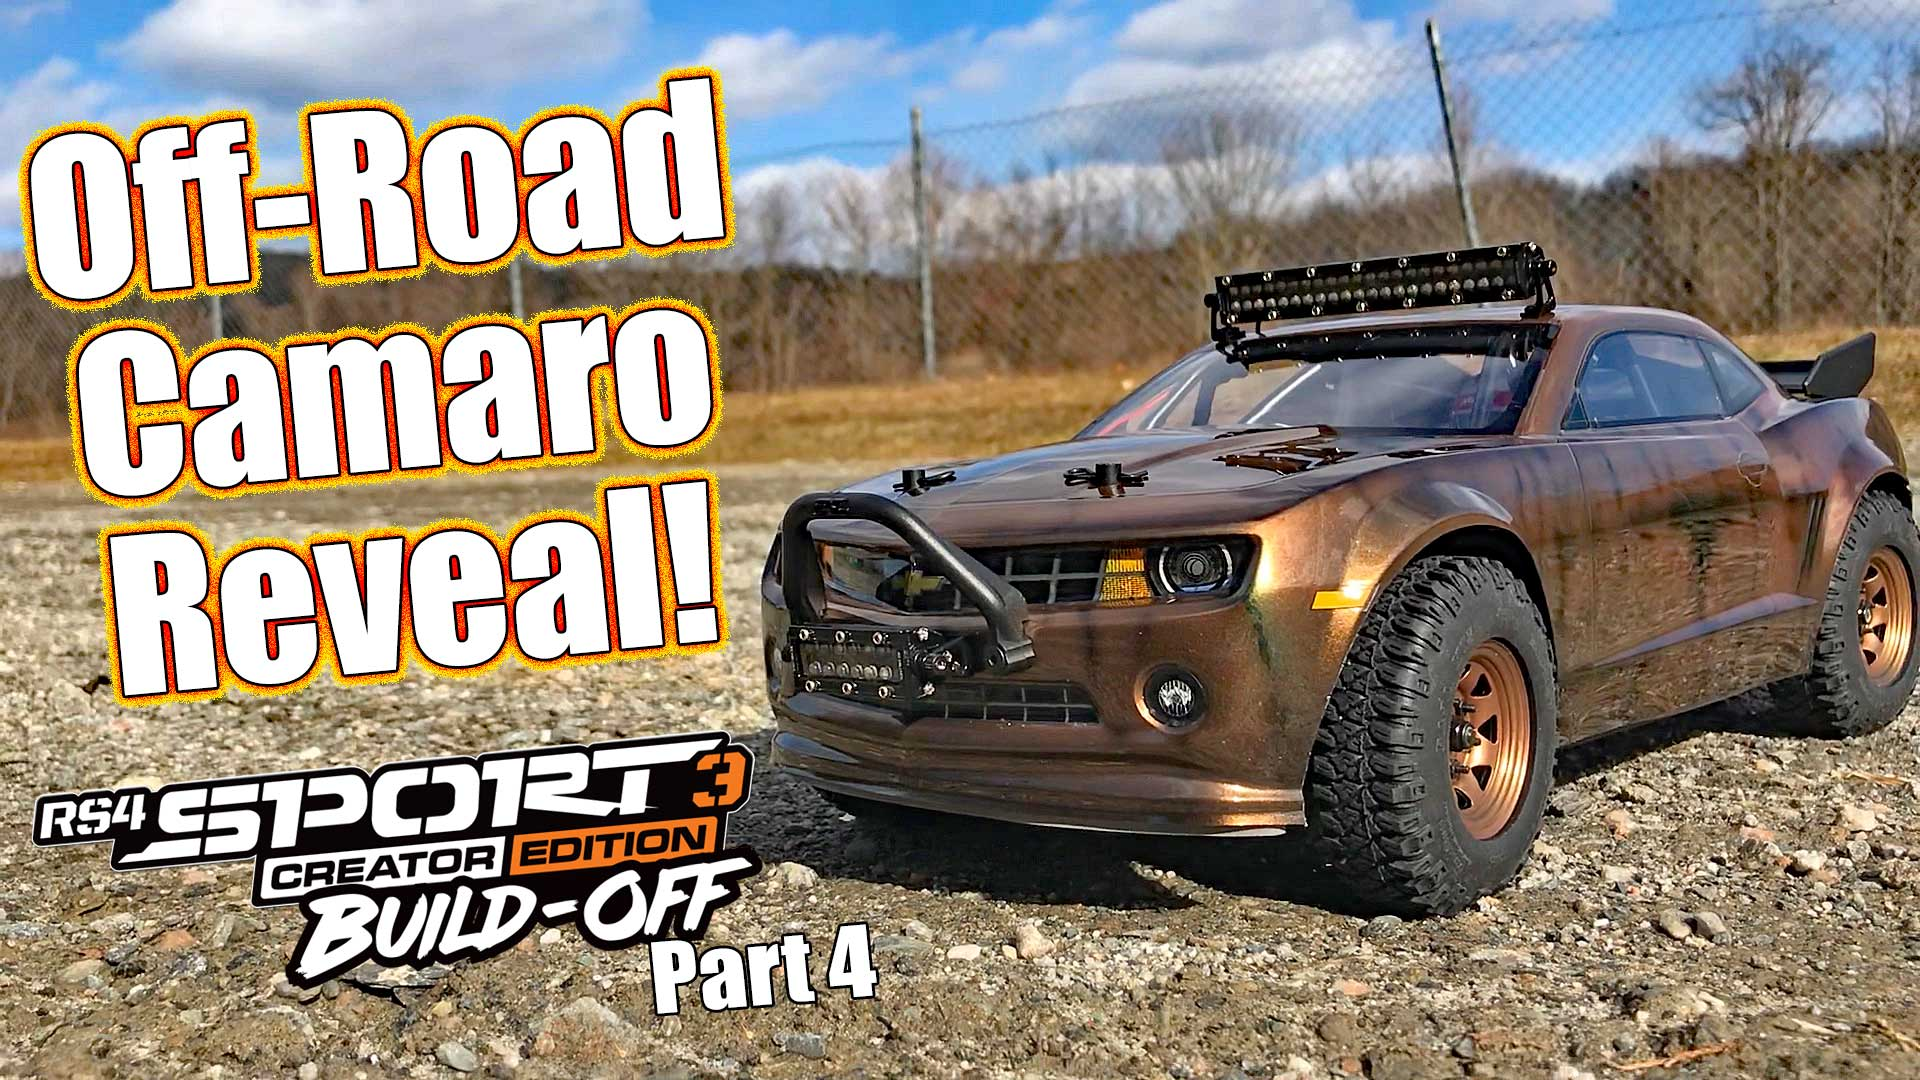 WILD Off-Road Camaro! - HPI Racing RS4 Sport 3 Build-Off Part 4